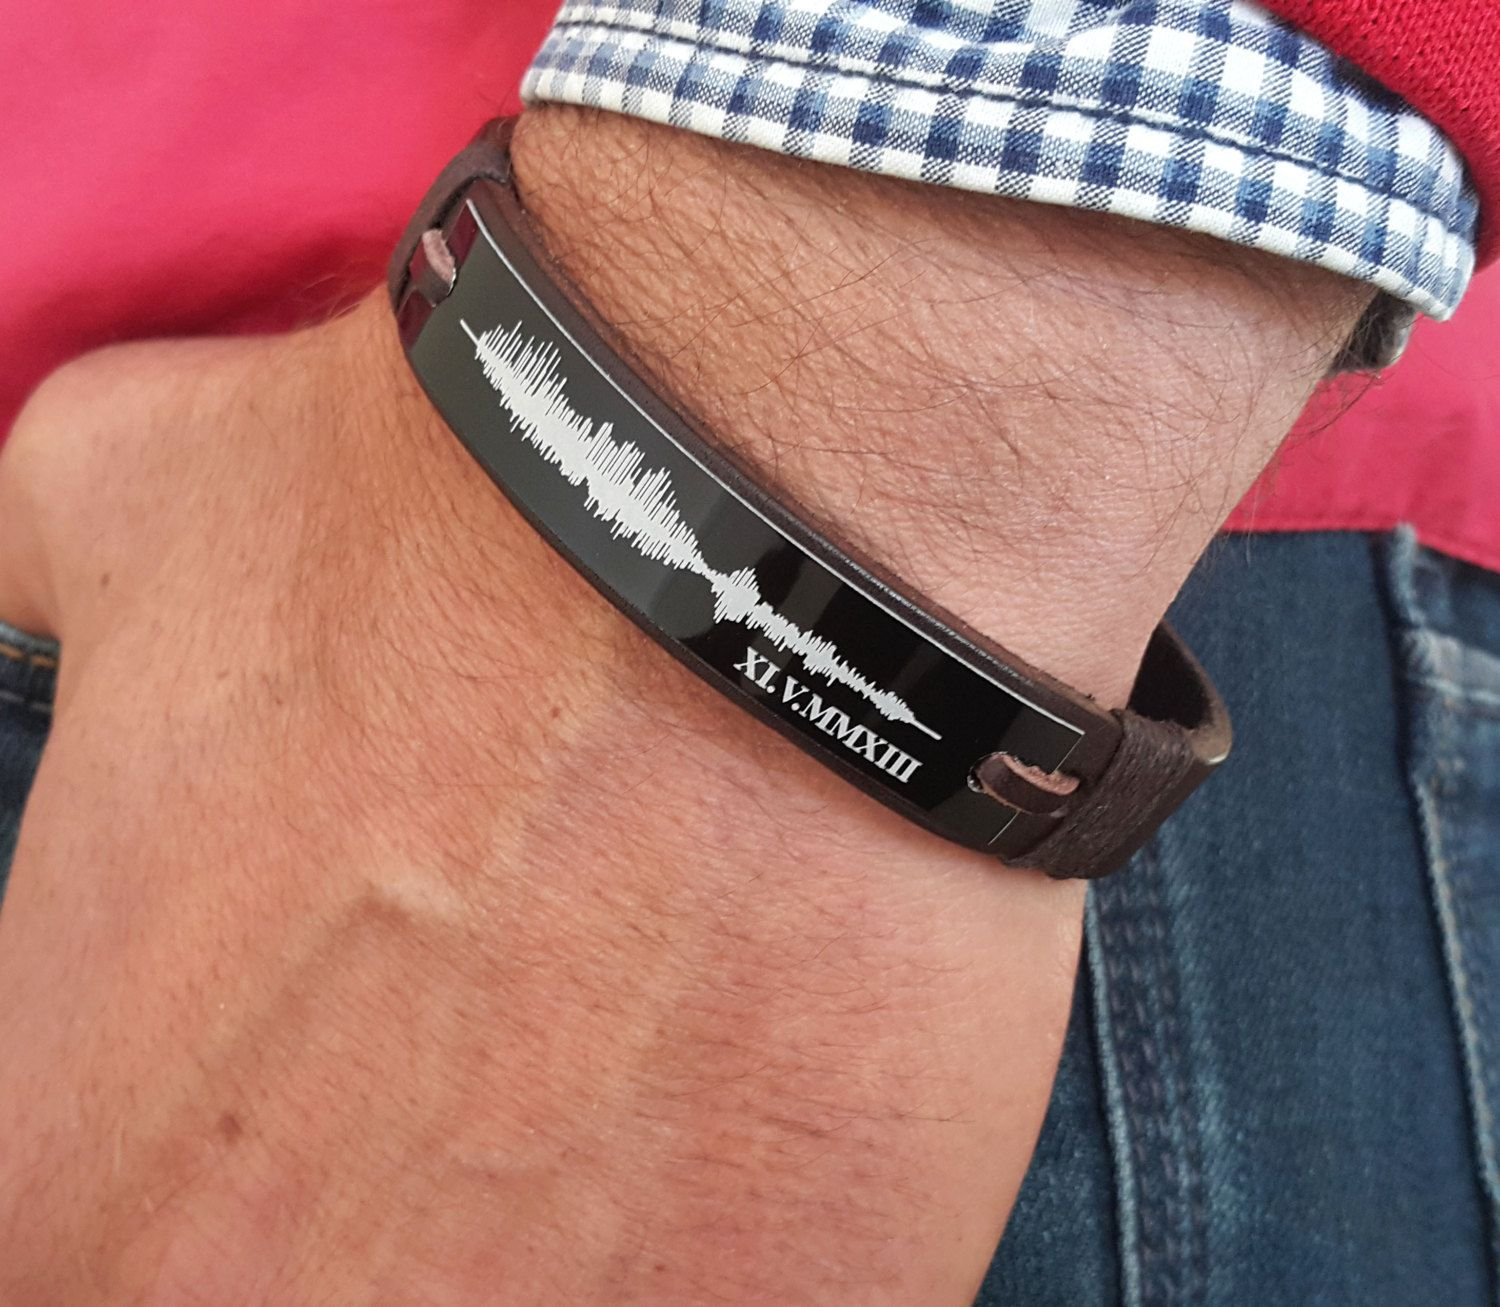 Custom Sound Wave Bracelet Waves Jewelry Personalized Leather Voice Engraved Memorial Gift Anniversary For Him